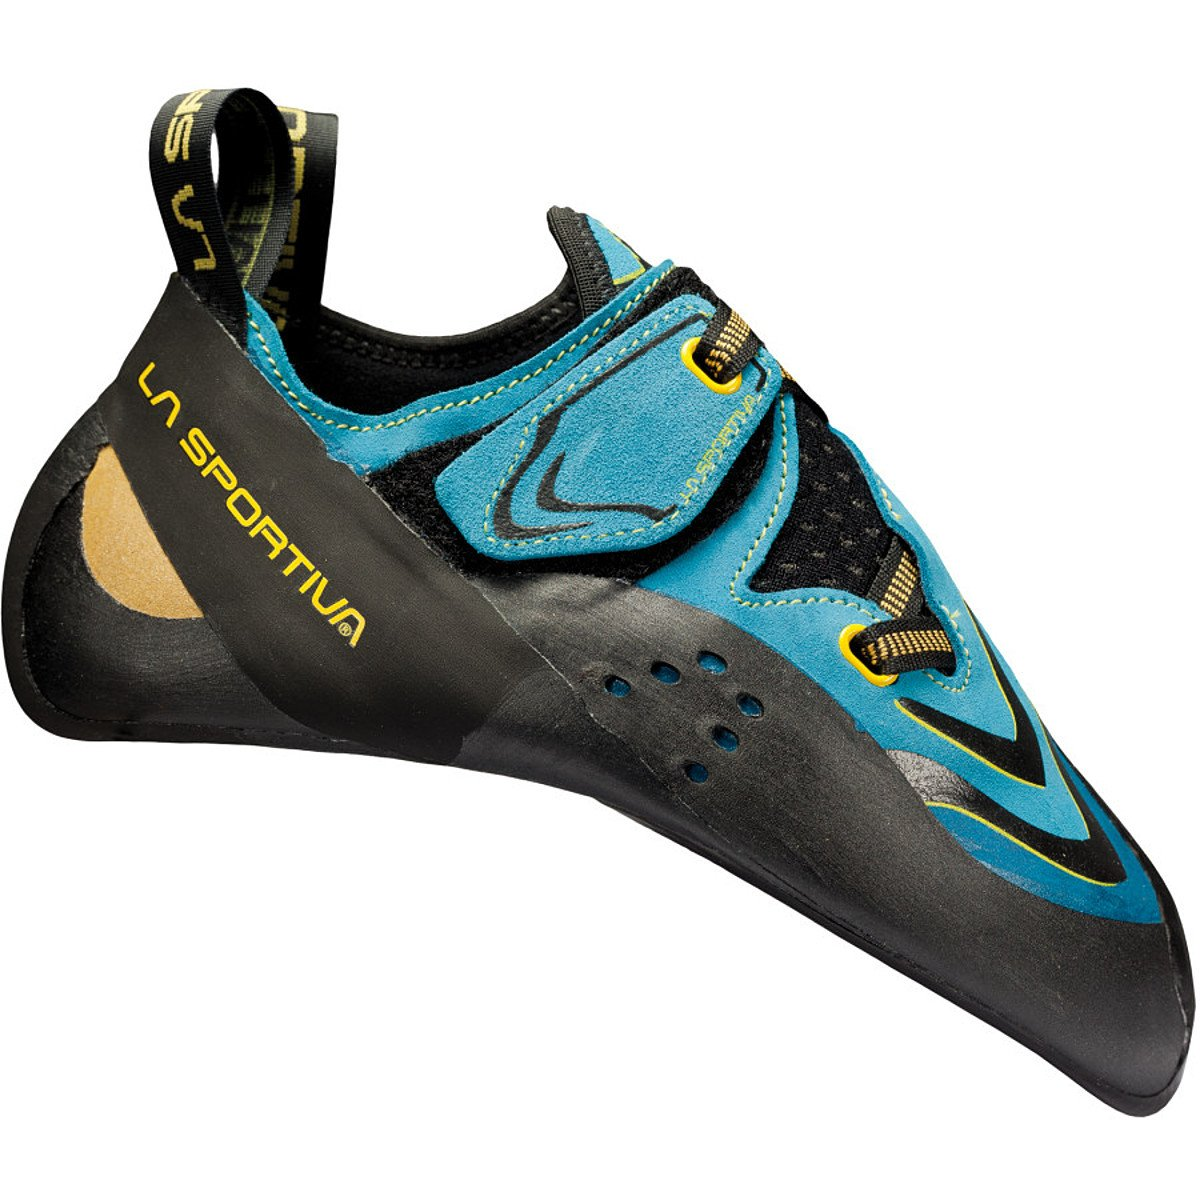 La Sportiva Men's Futura Performance Rock Climbing Shoe 20R-600100-40.5